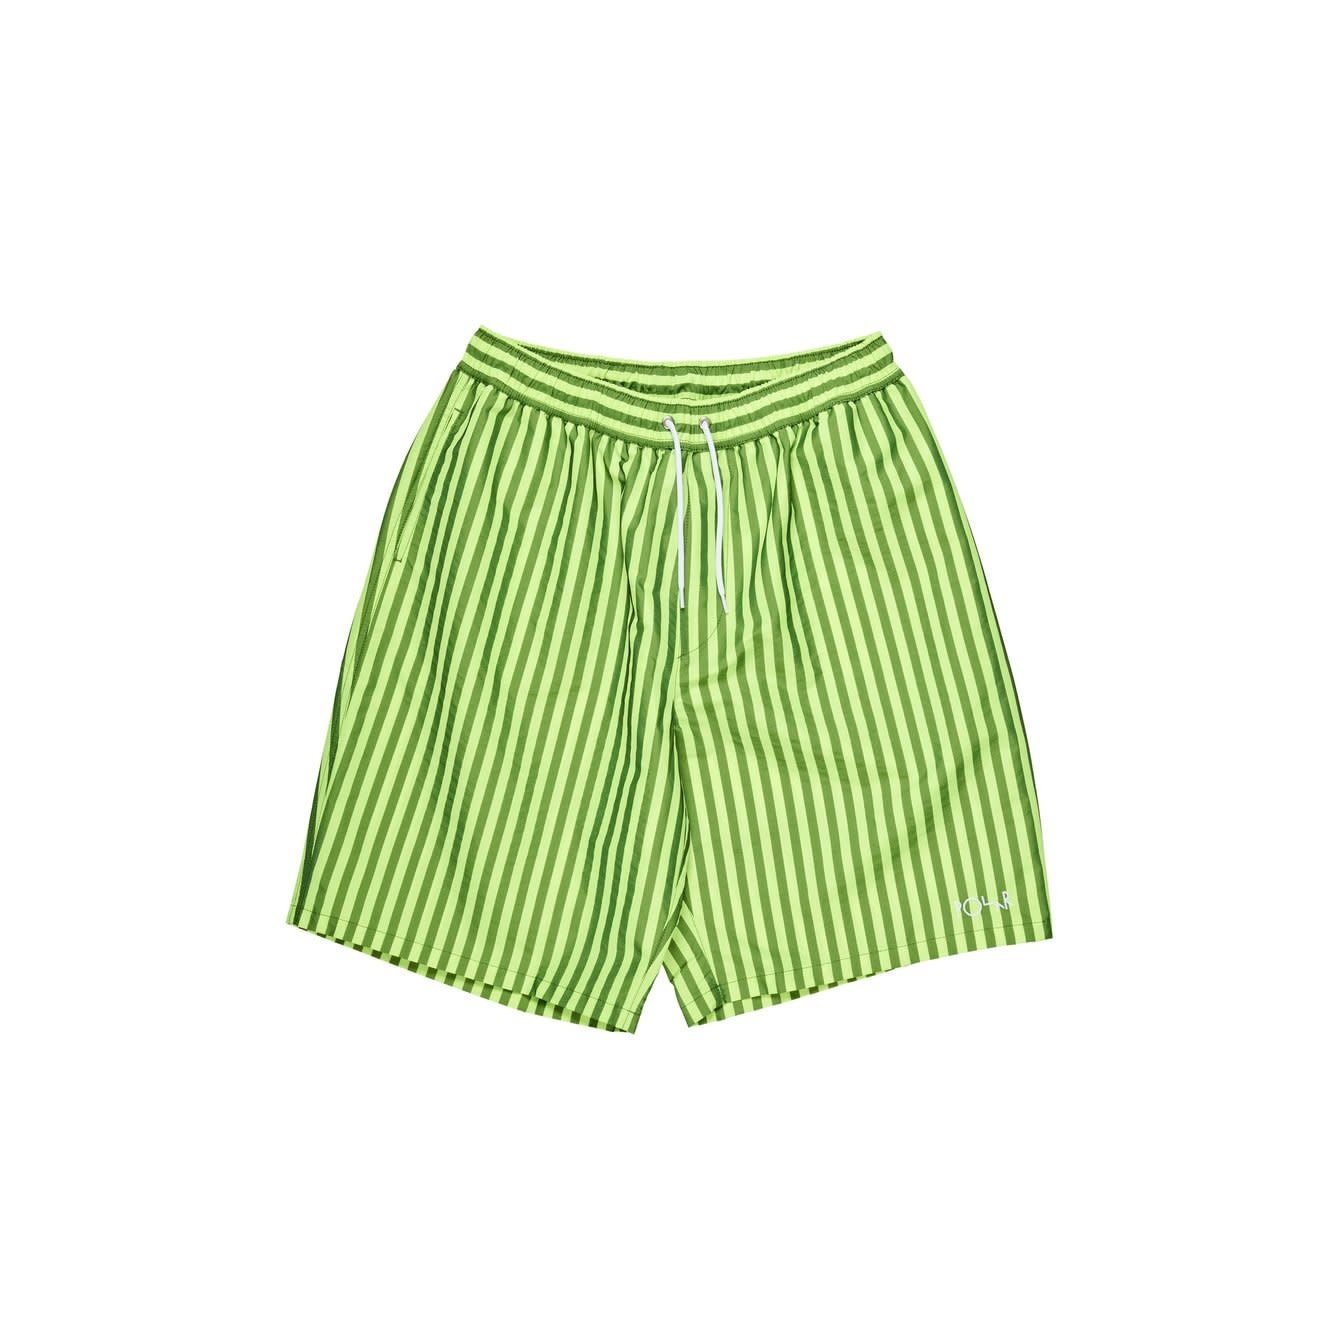 Polar Skate Co. Stripe Swim Shorts Neon Yellow